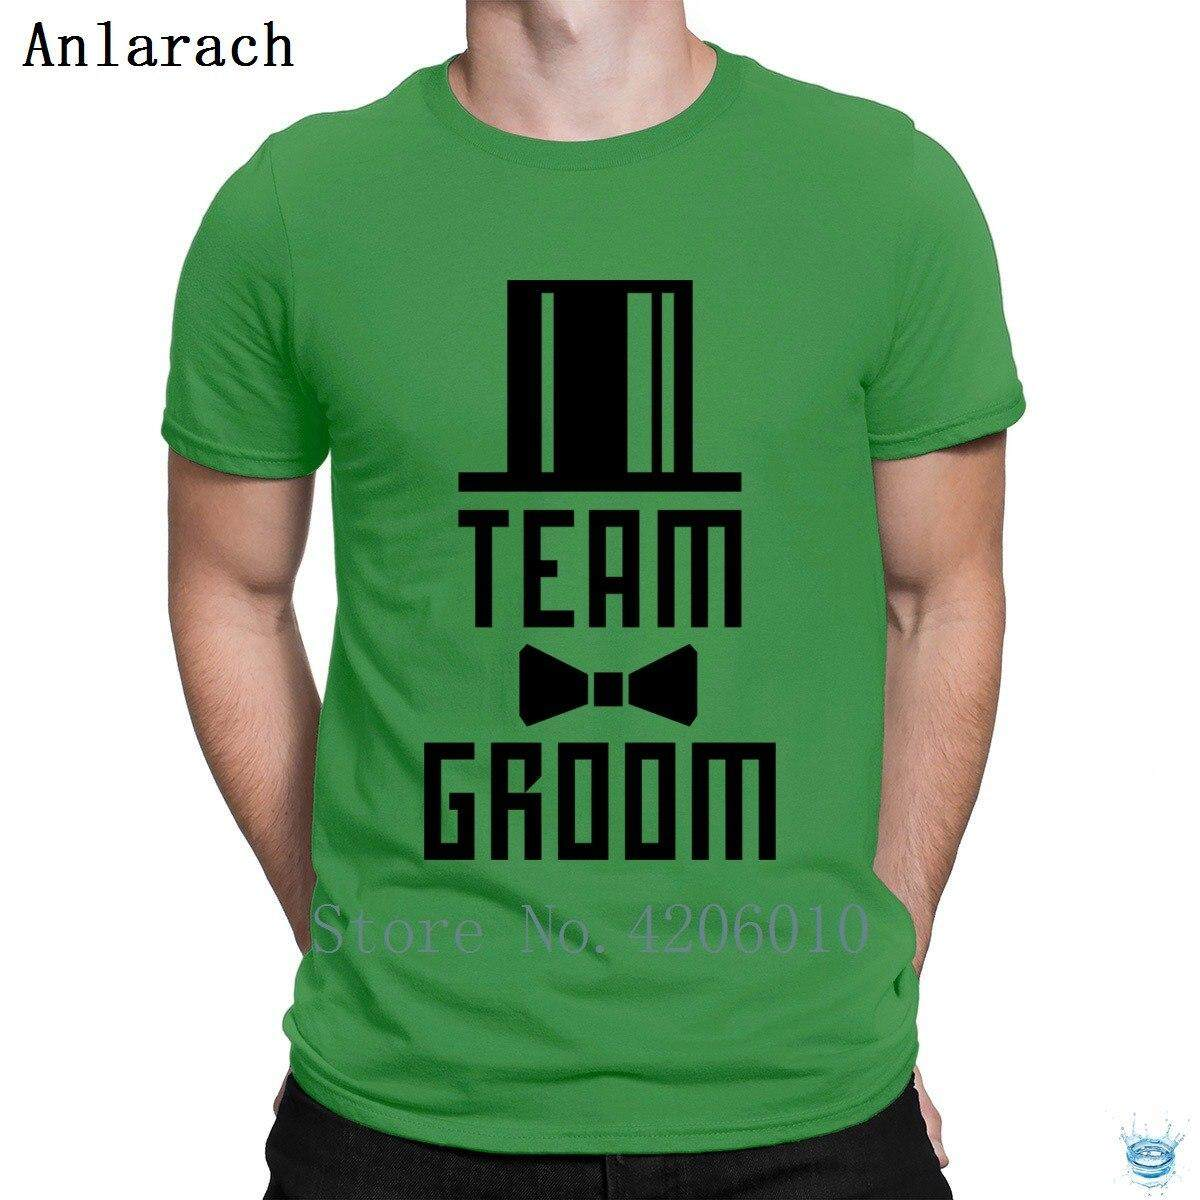 29656f9a3fd7b ChunG 14 Team Groom Bachelor Party Jga Cylinder Hut Bff Tshirt Graphic  Spring Autumn T Shirt For Men Customized Websites Pop Top Tee